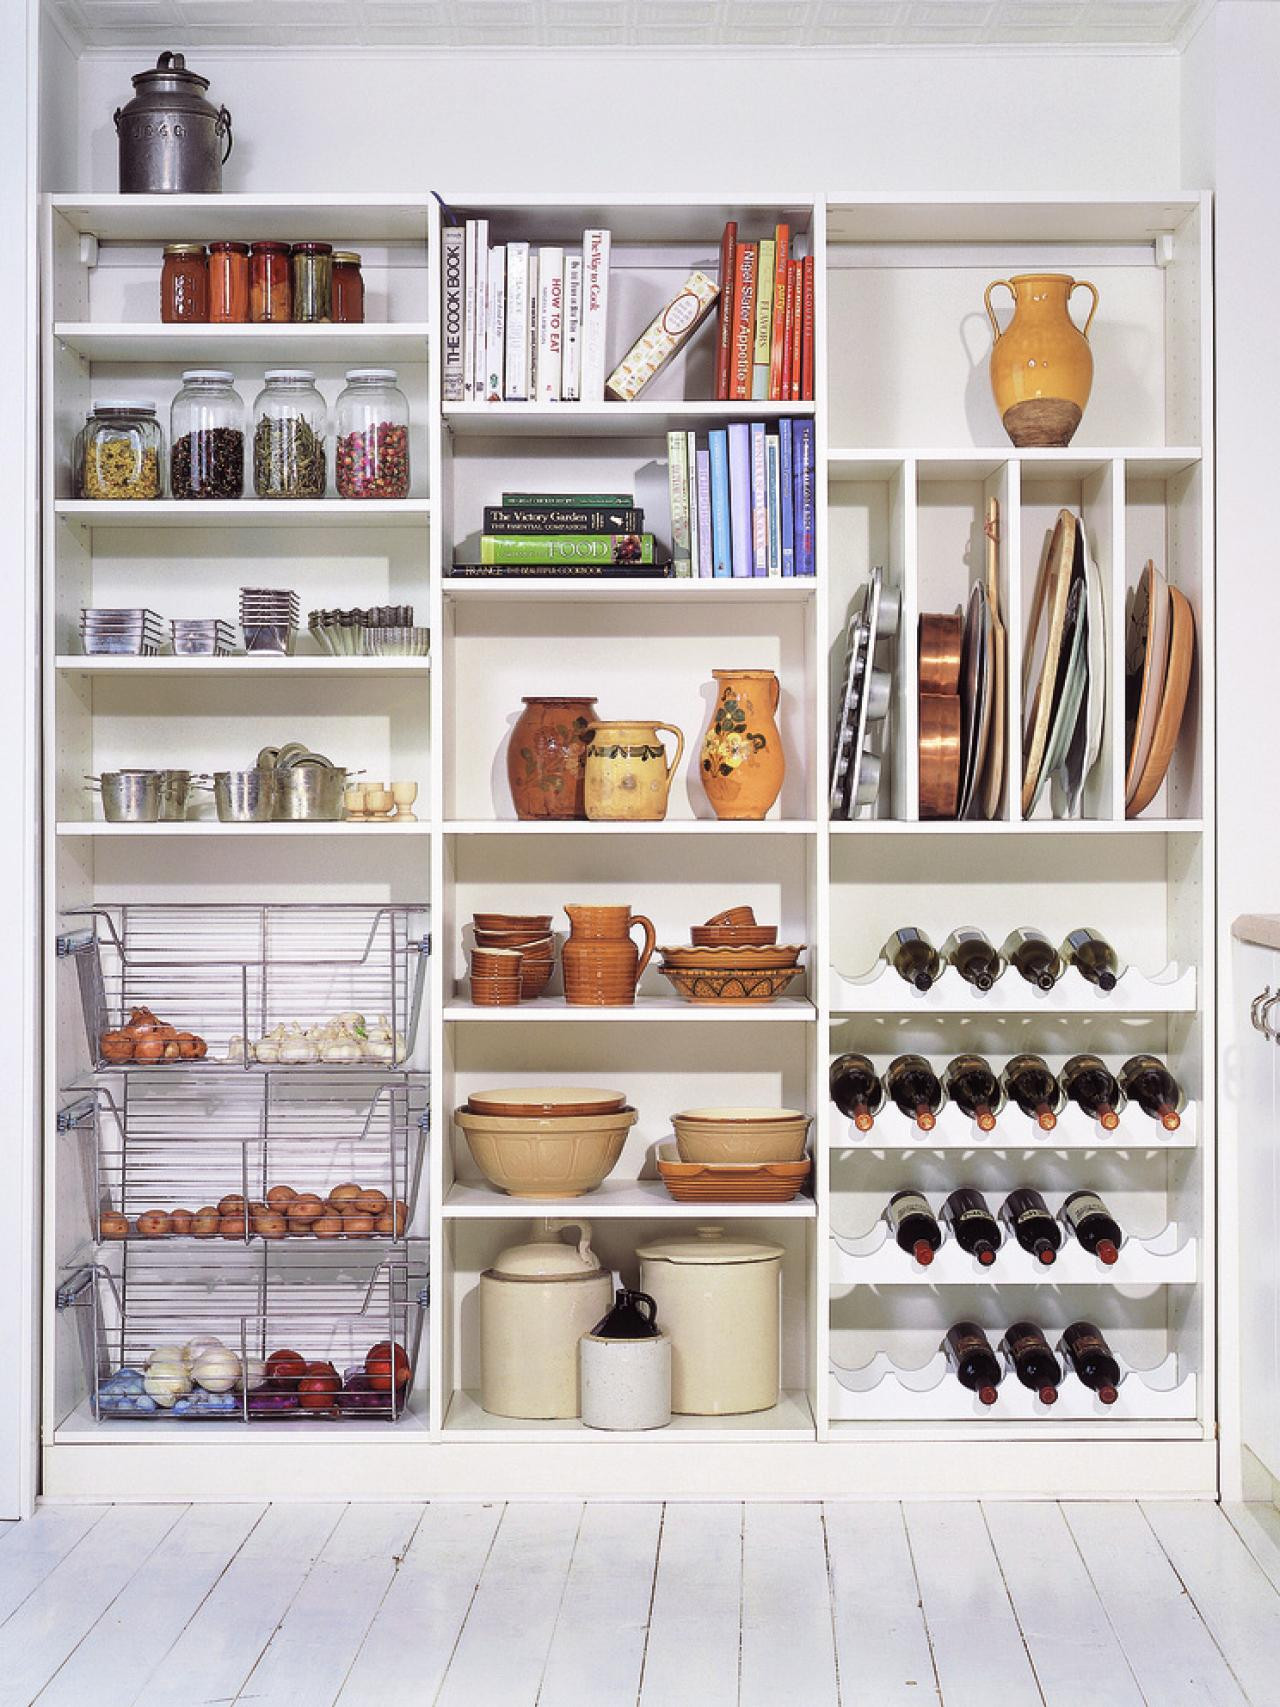 Best ideas about Pantry Storage Ideas . Save or Pin 51 of Kitchen Pantry Designs & Ideas Now.